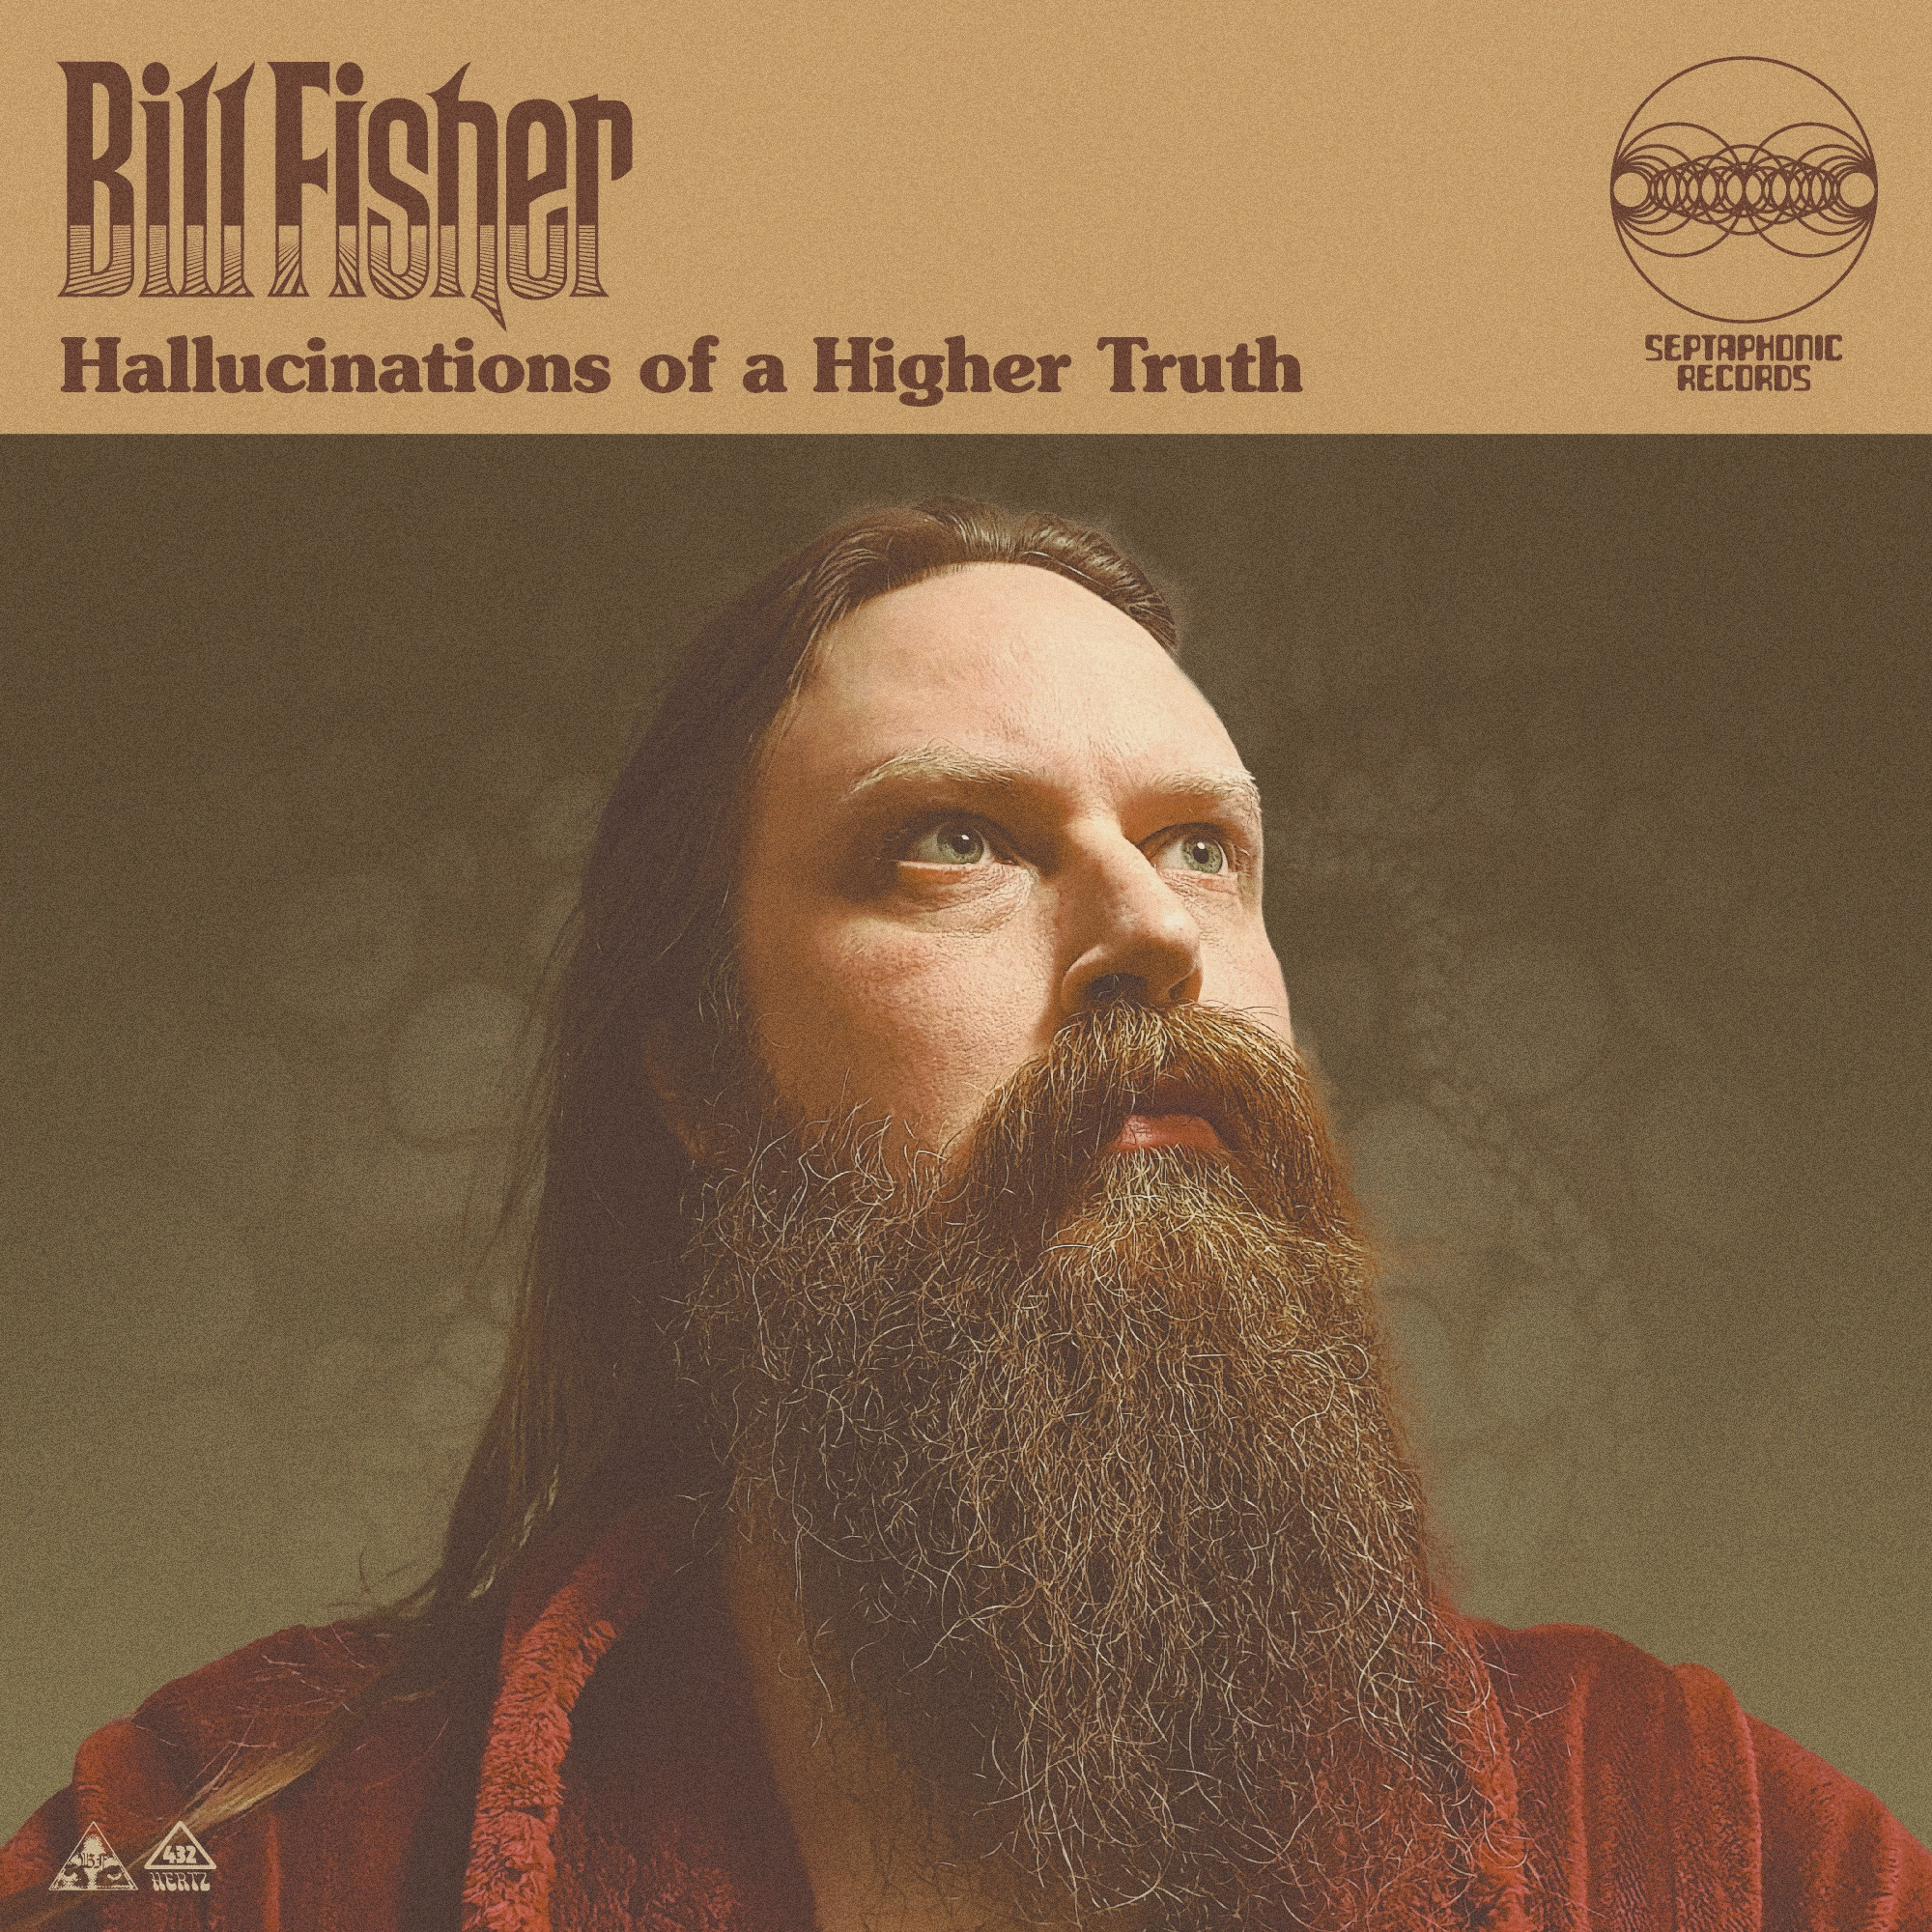 Bill Fisher Hallucinations of a Higher Truth